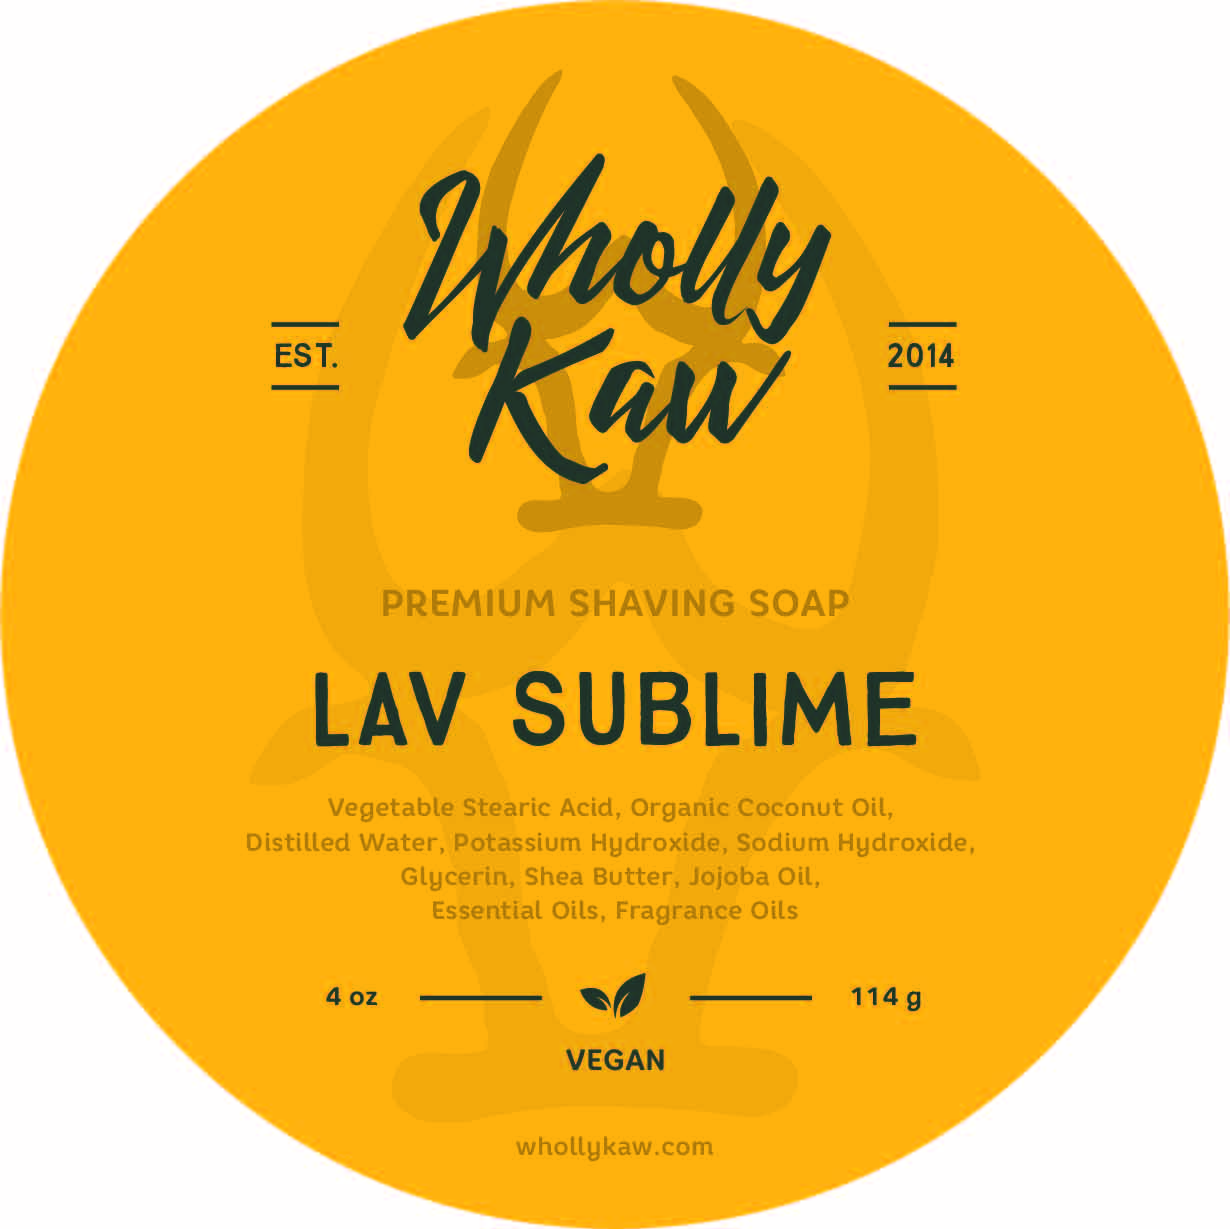 Wholly Kaw - Lav Sublime - Soap (Vegan) image